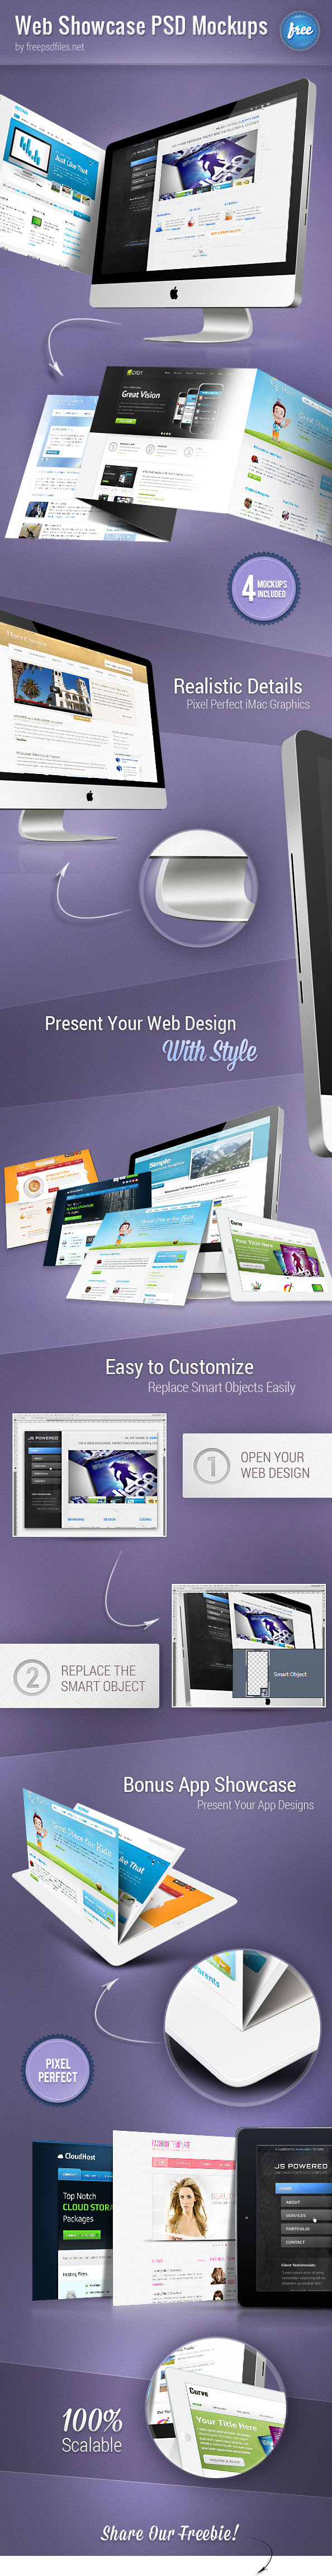 Web Showcase PSD Mockups Preview